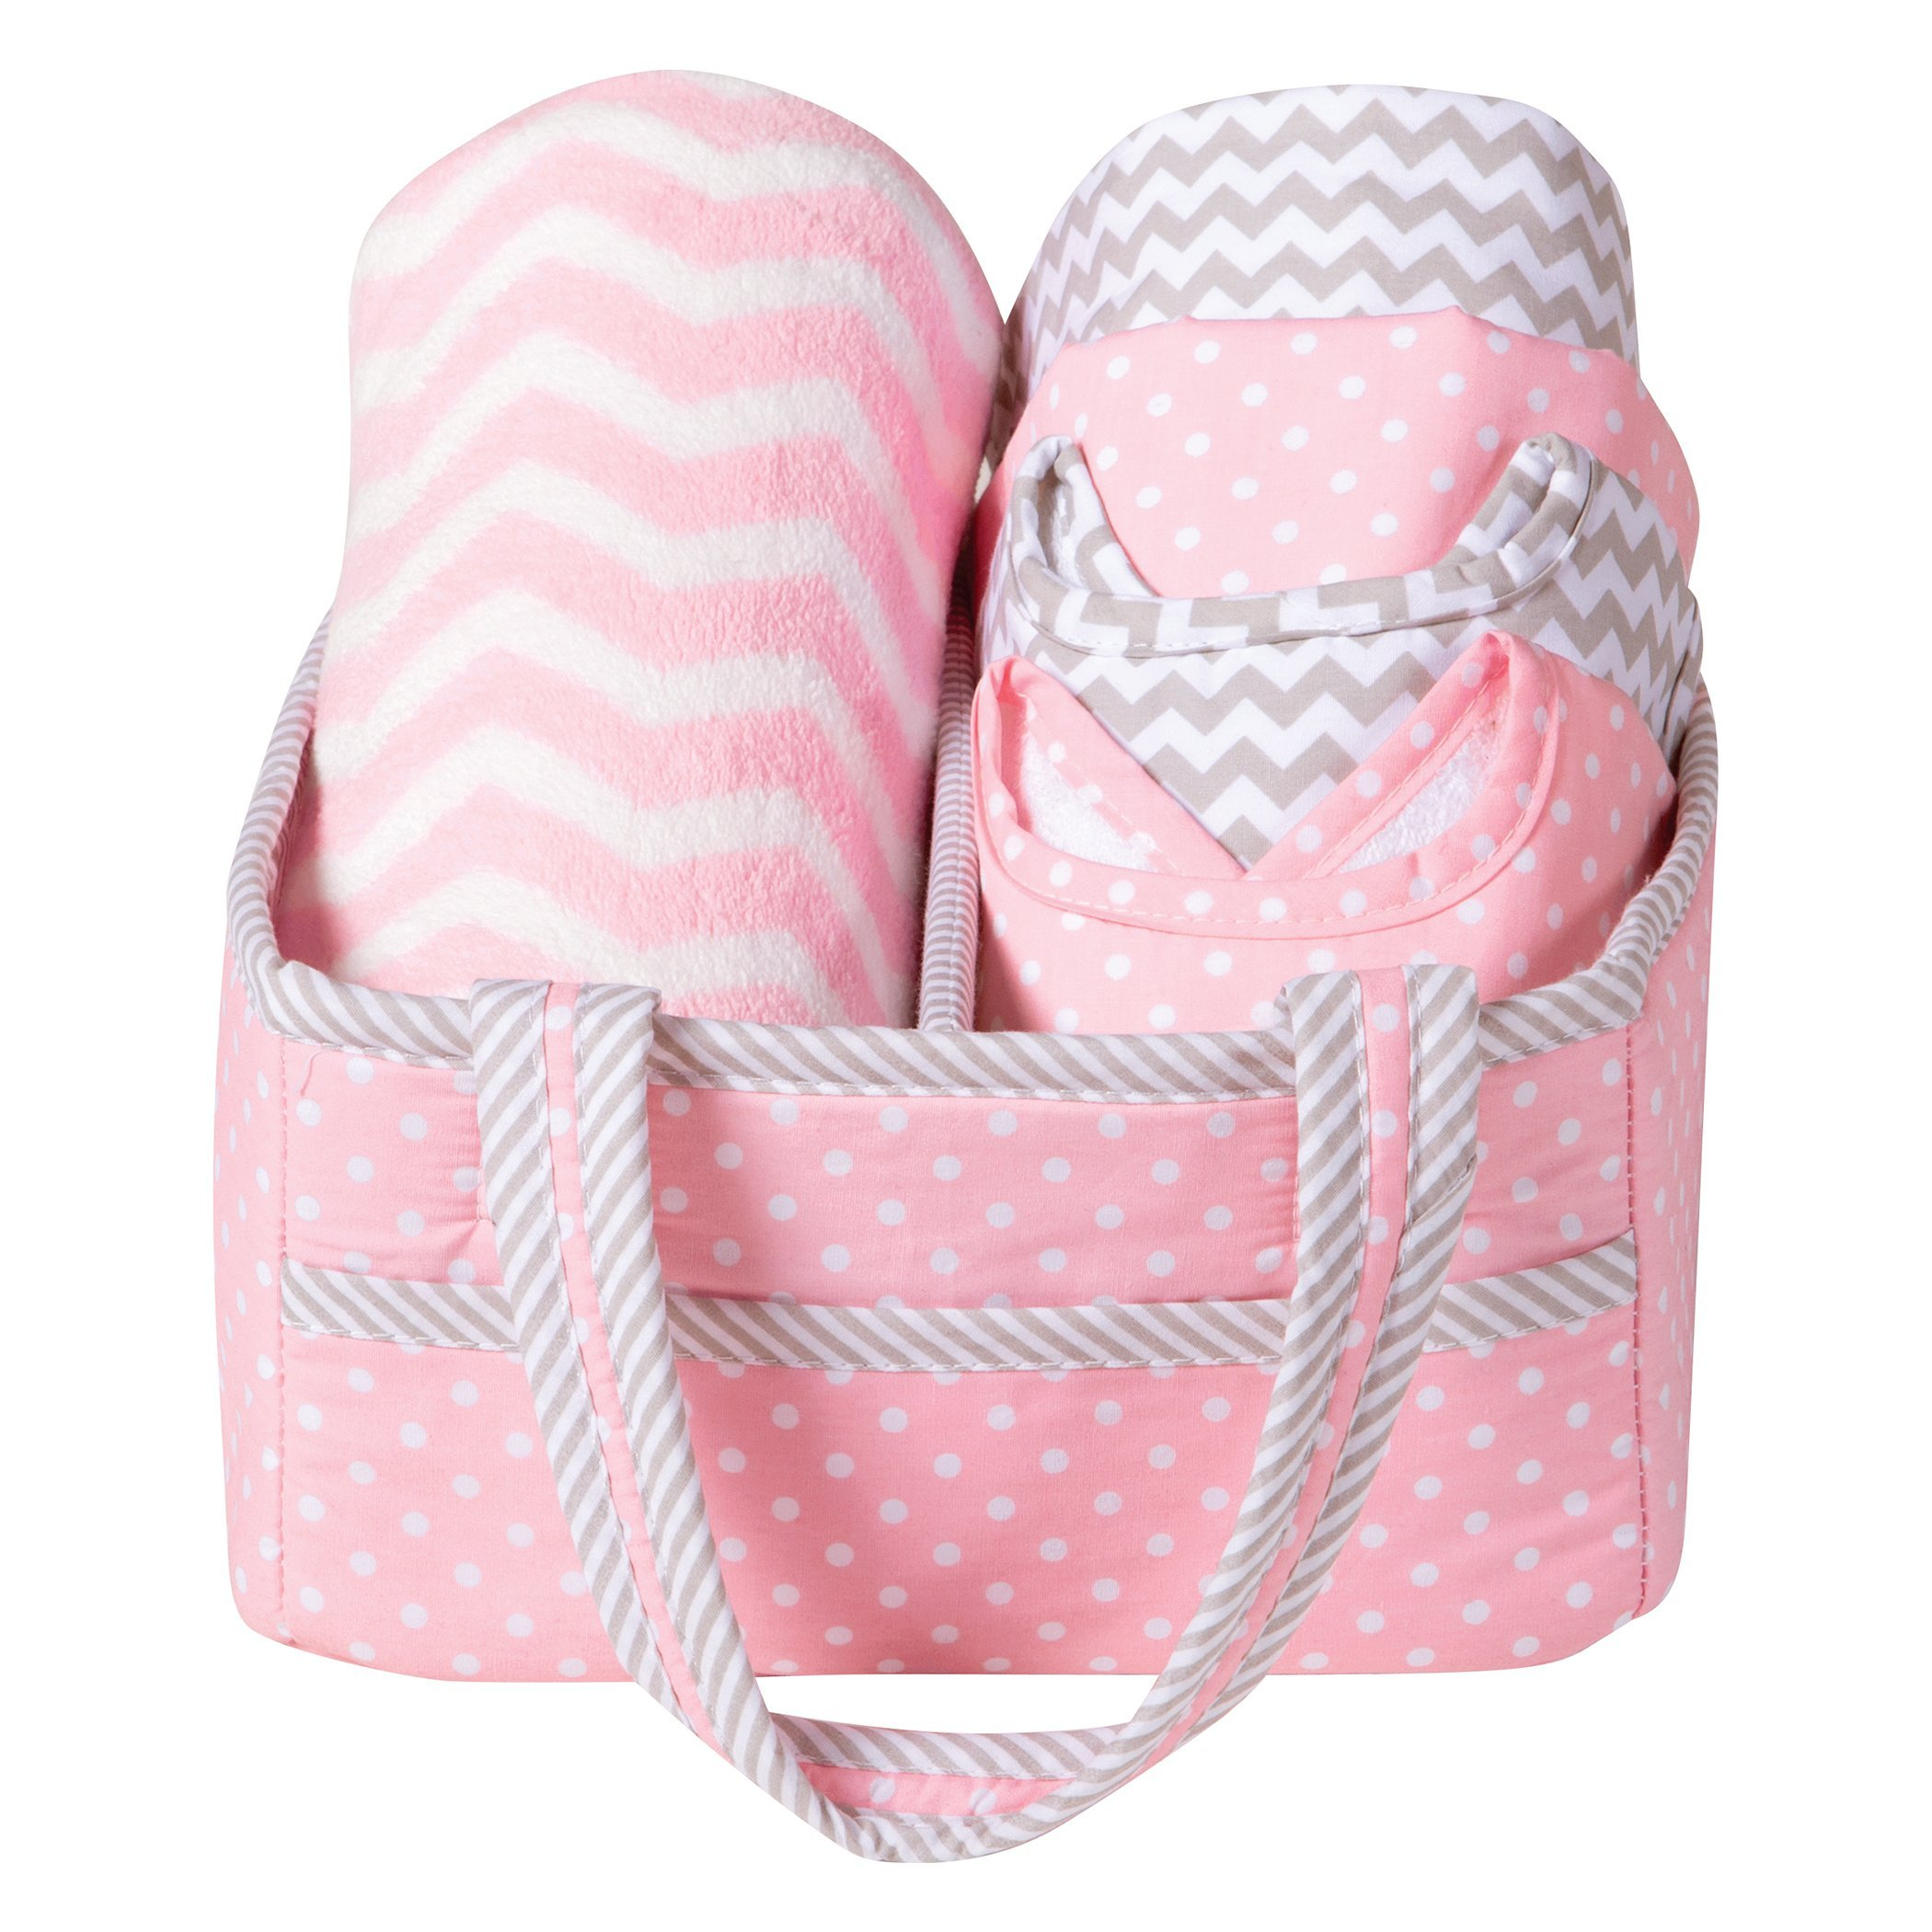 Trend Lab 6 Piece Baby Care Gift Set, Pink Sky